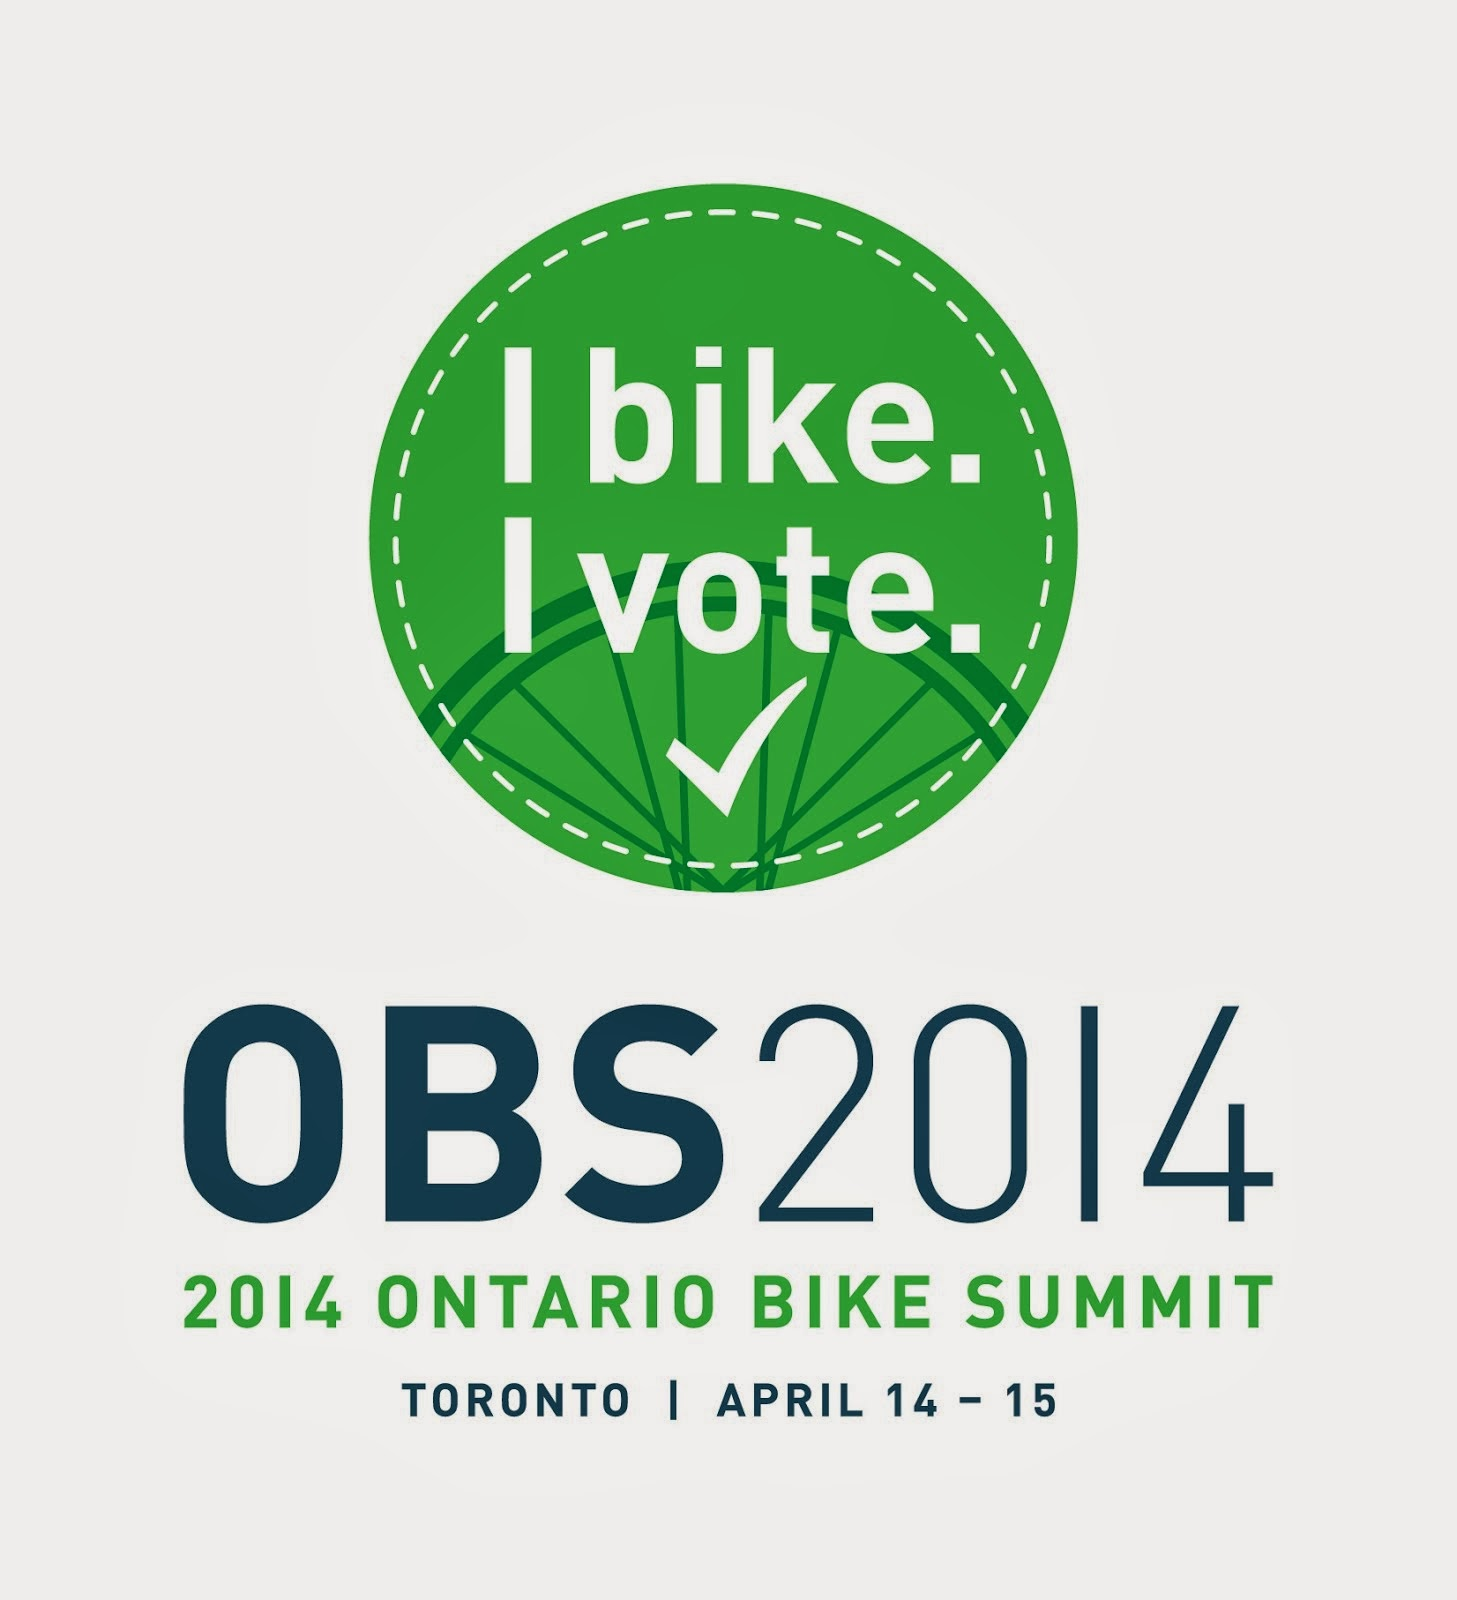 2014 Ontario Bike Summit